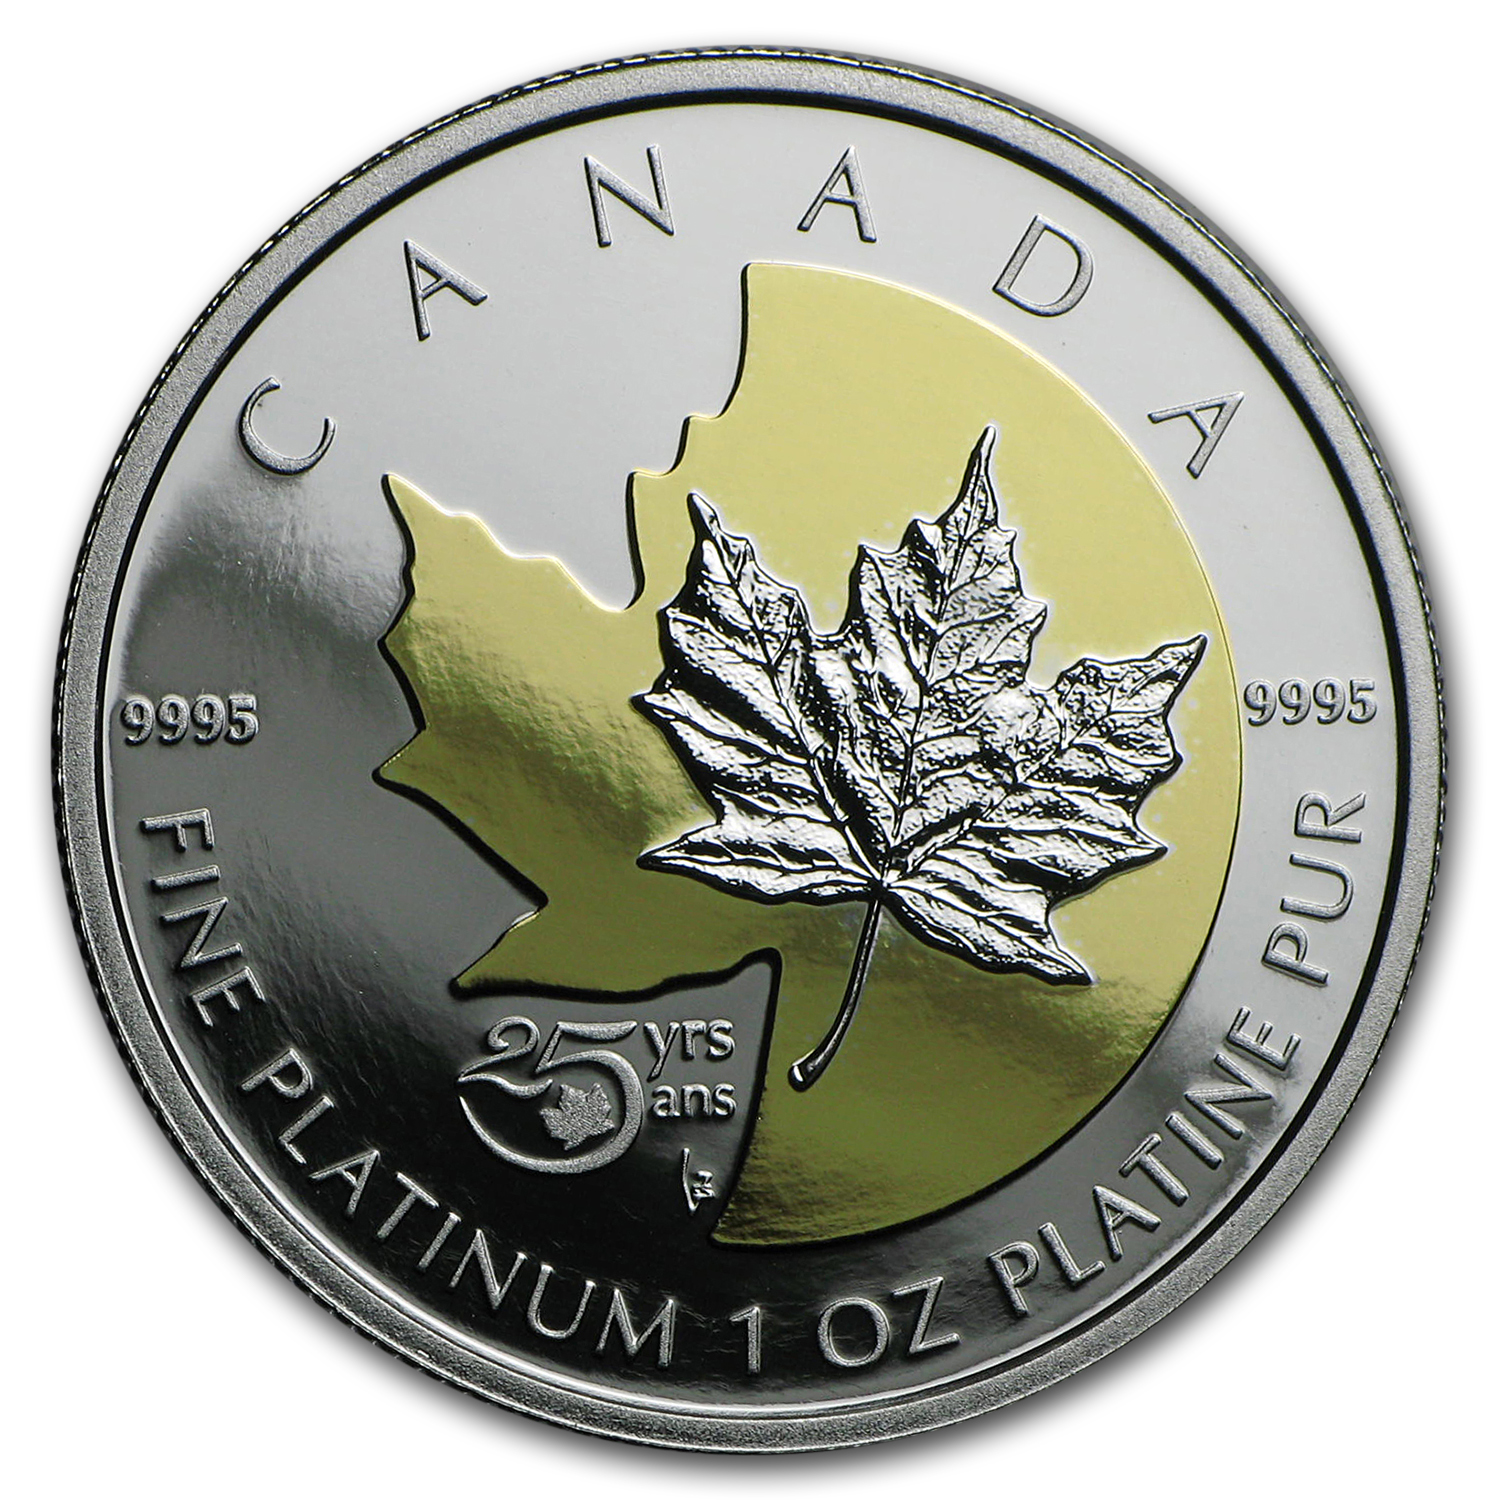 2013 1 oz Proof Platinum Canadian $300 25th Anniv of the Maple